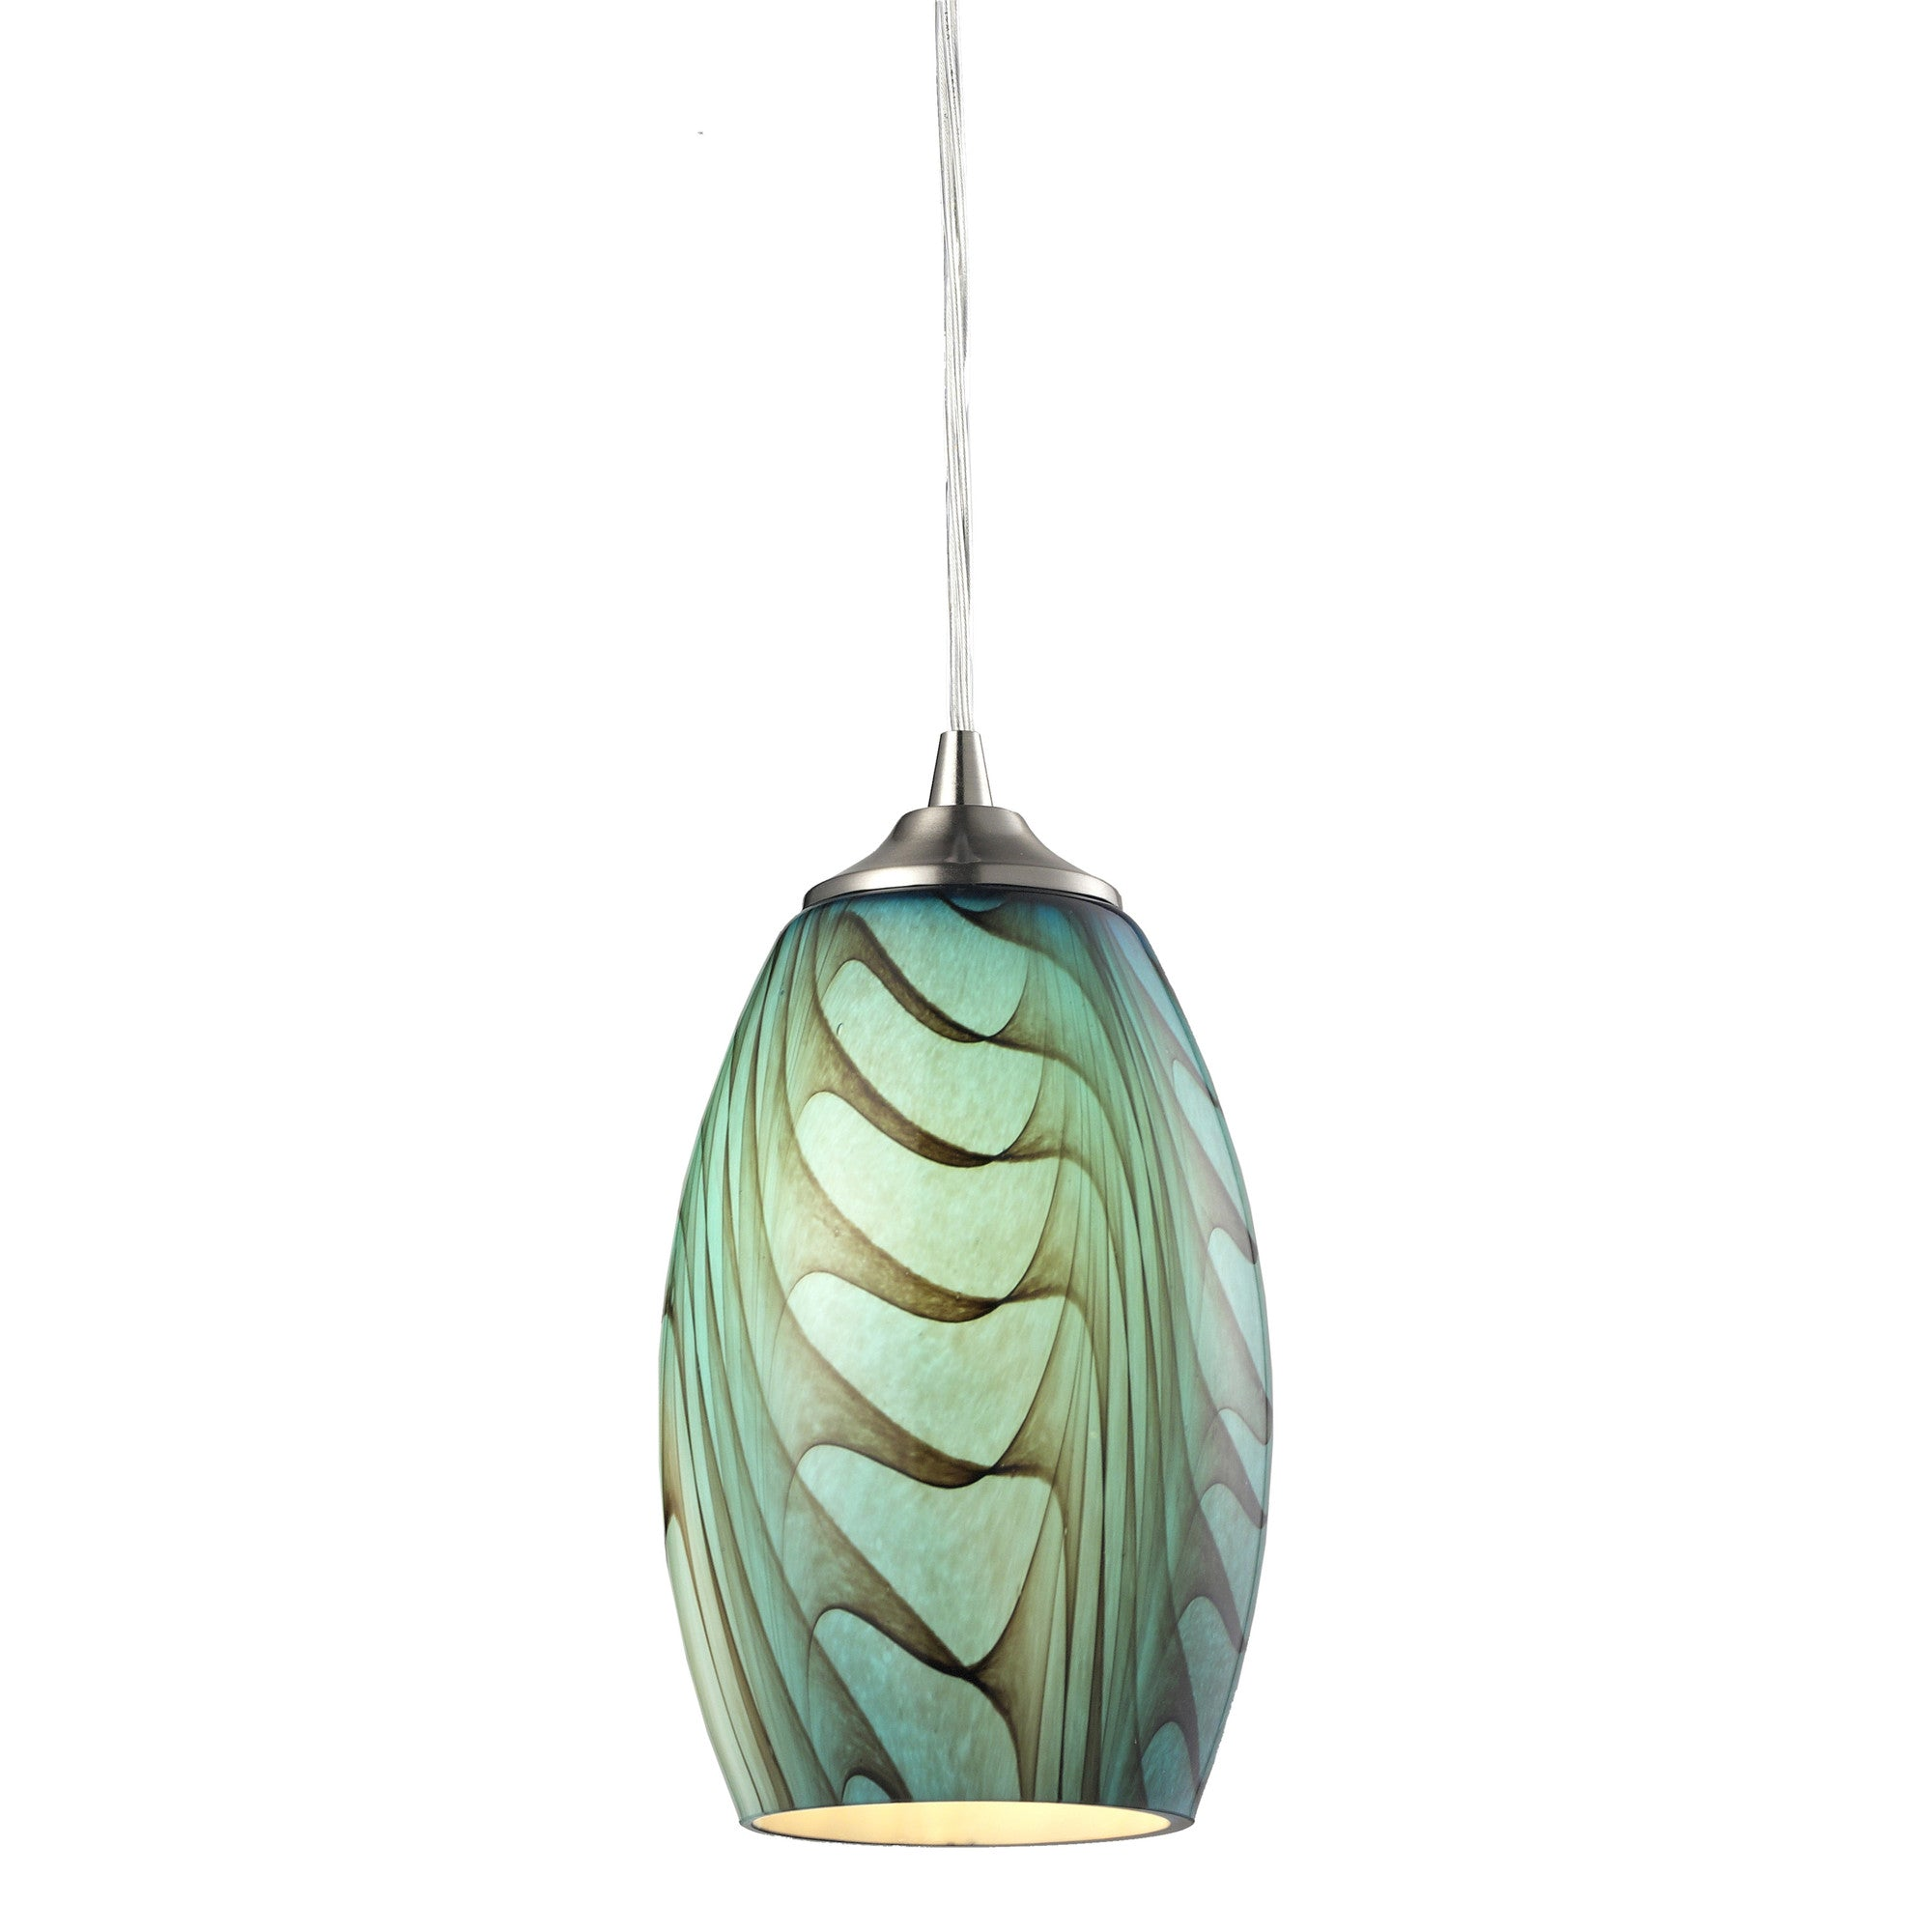 and made glass wall dr by the plet oliver hand lighting pin designed glund light blown pendant h